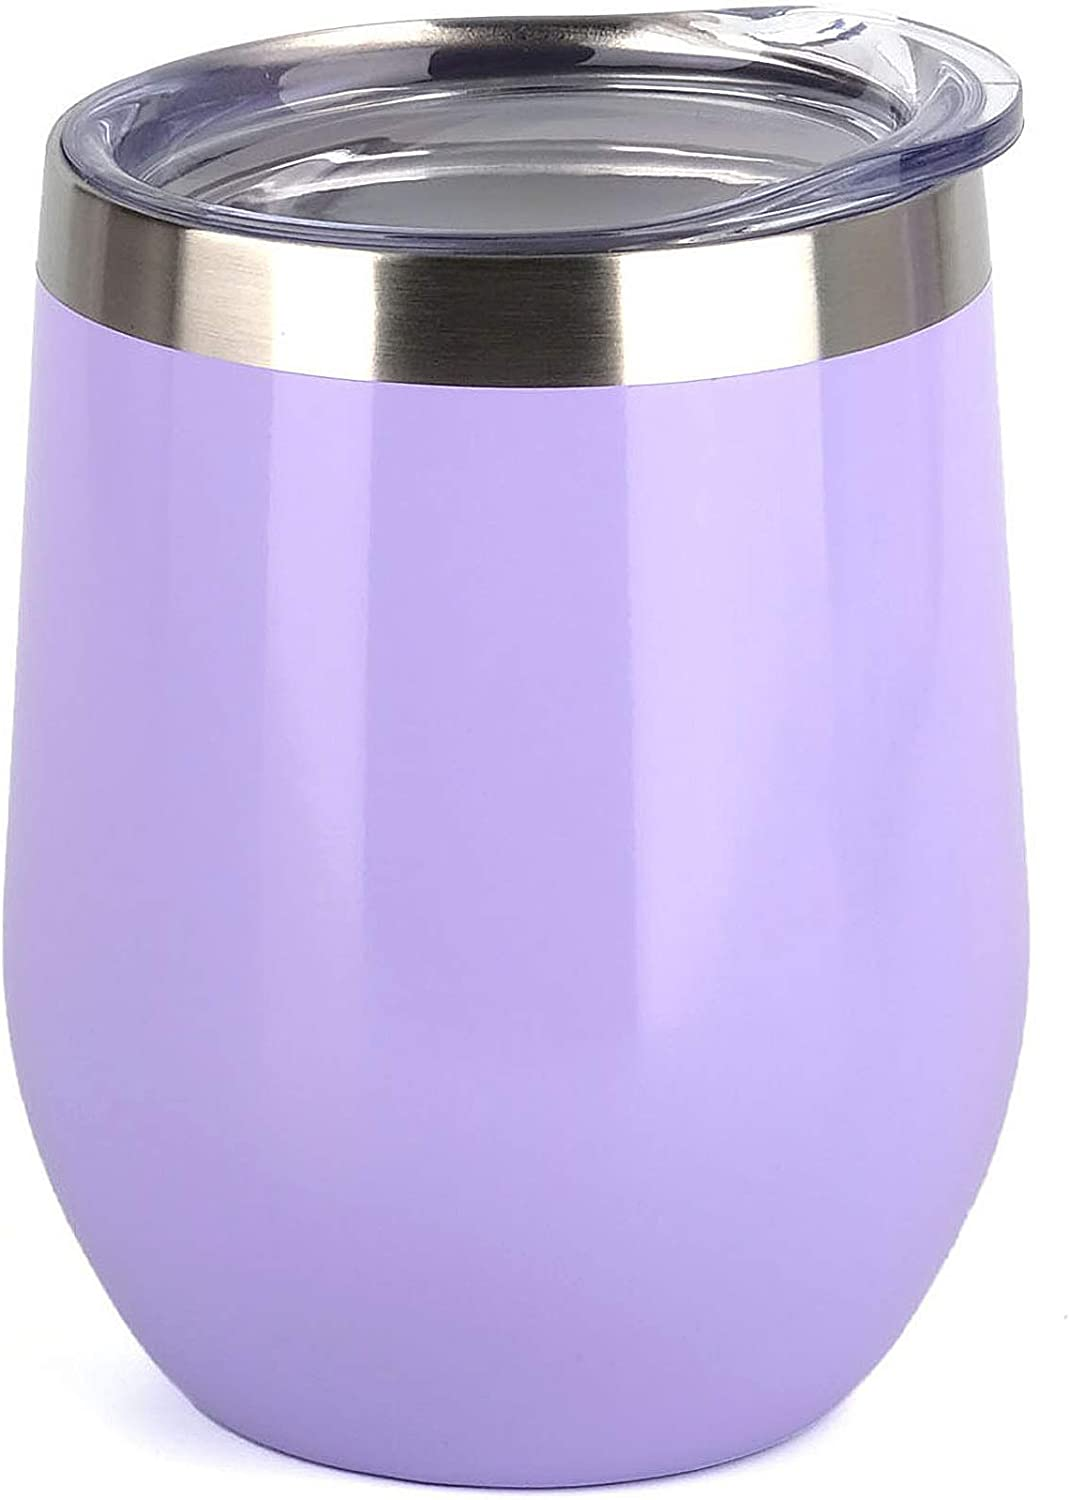 SUNWILL Insulated Wine Tumbler with Lid (Lavender), Stemless Stainless Steel Insulated Wine Glass 12oz, Double Wall Durable Coffee Mug, for Champaign, Cocktail, Beer, Office use